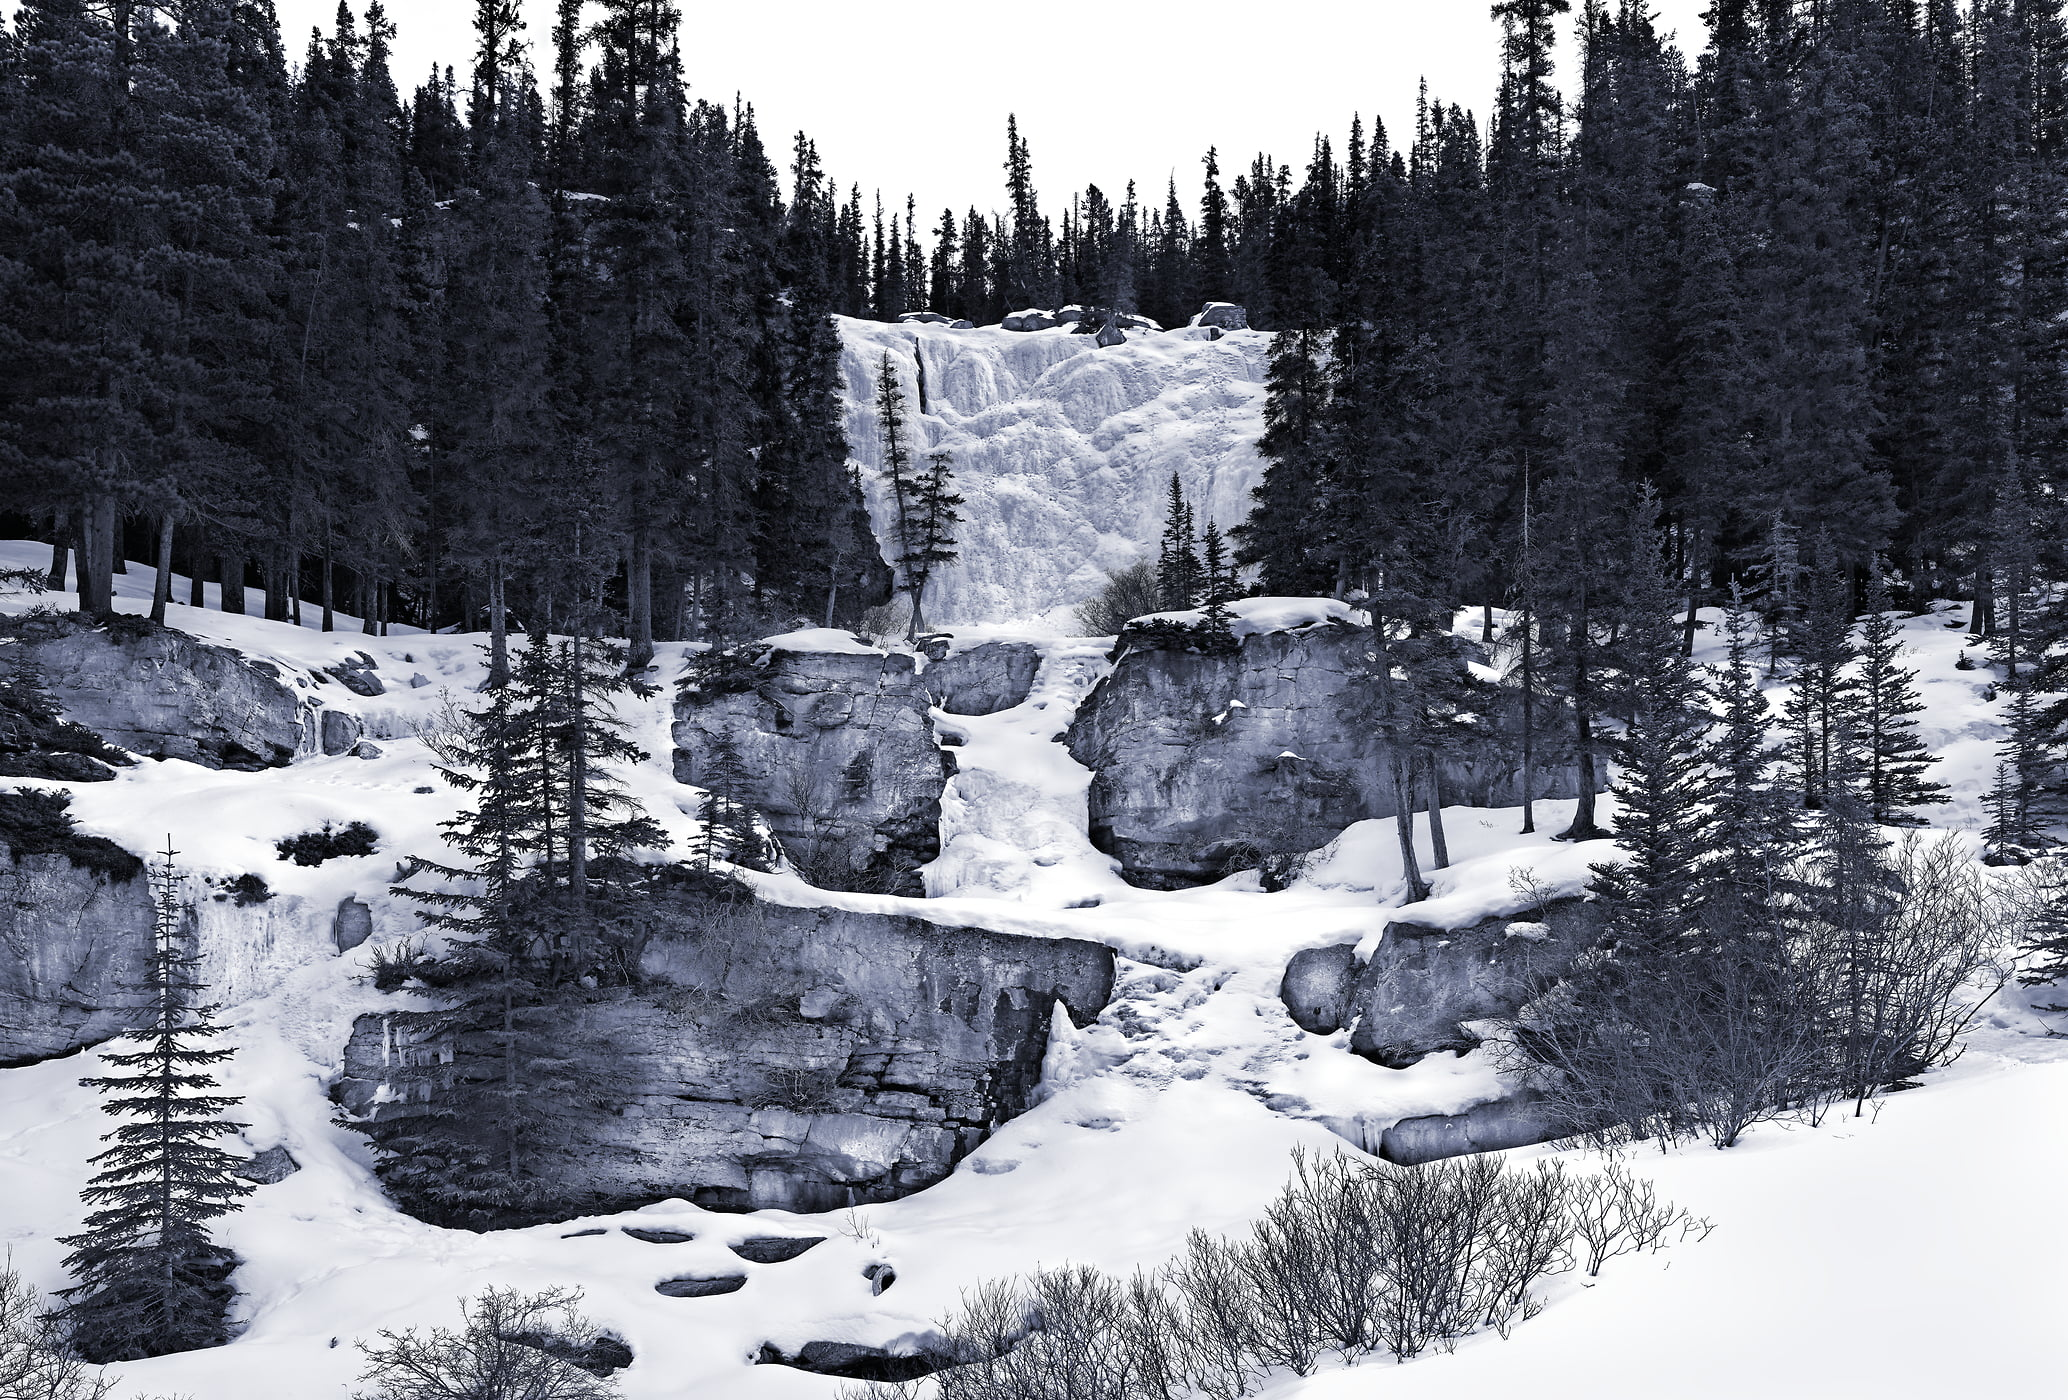 2,429 megapixels! A very high resolution, large-format VAST photo print of a frozen waterfall in winter with trees; fine art nature photo created by Steve Webster in Jasper National Park, Alberta, Canada